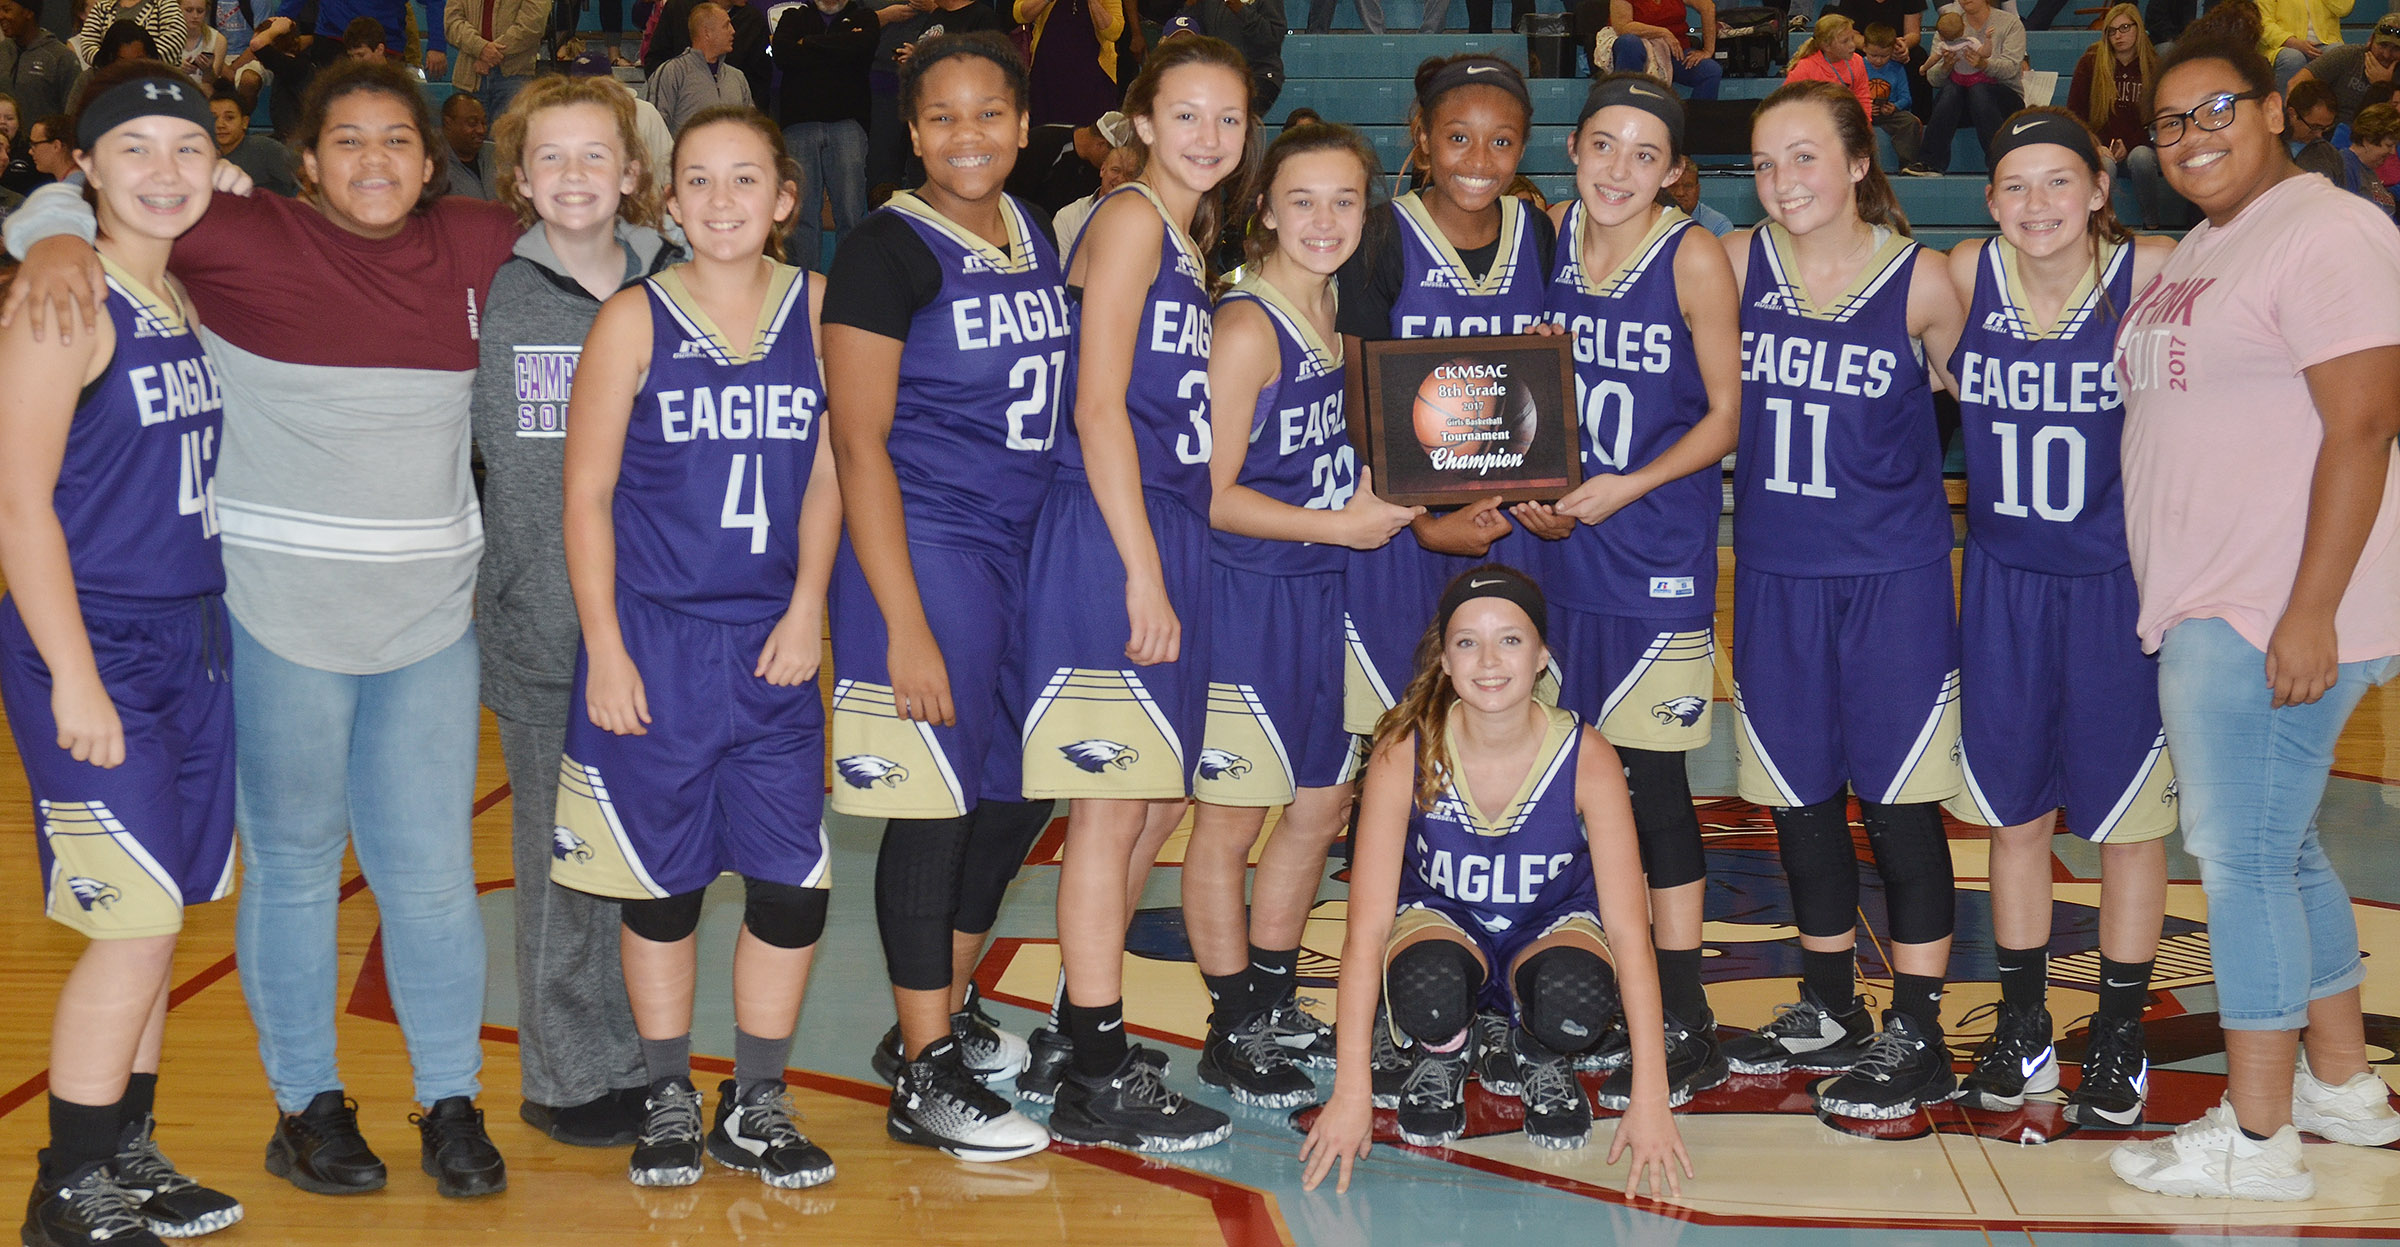 Campbellsville Middle School girls' eighth-grade basketball team recently won its first Central Kentucky Middle School Athletic Conference tournament championship title in 20 years. In front is eighth-grader Rylee Petett. Back, from left, eighth-grader Olivia Fields, seventh-graders Asia Barbour, Dakota Slone, Briana Davis, Antaya Epps and Bri Hayes, eighth-graders Tayler Thompson, Bri Gowdy, Kaylyn Smith and Lainey Watson, seventh-grader BreAnna Humphress and eighth-grader Brae Washington.